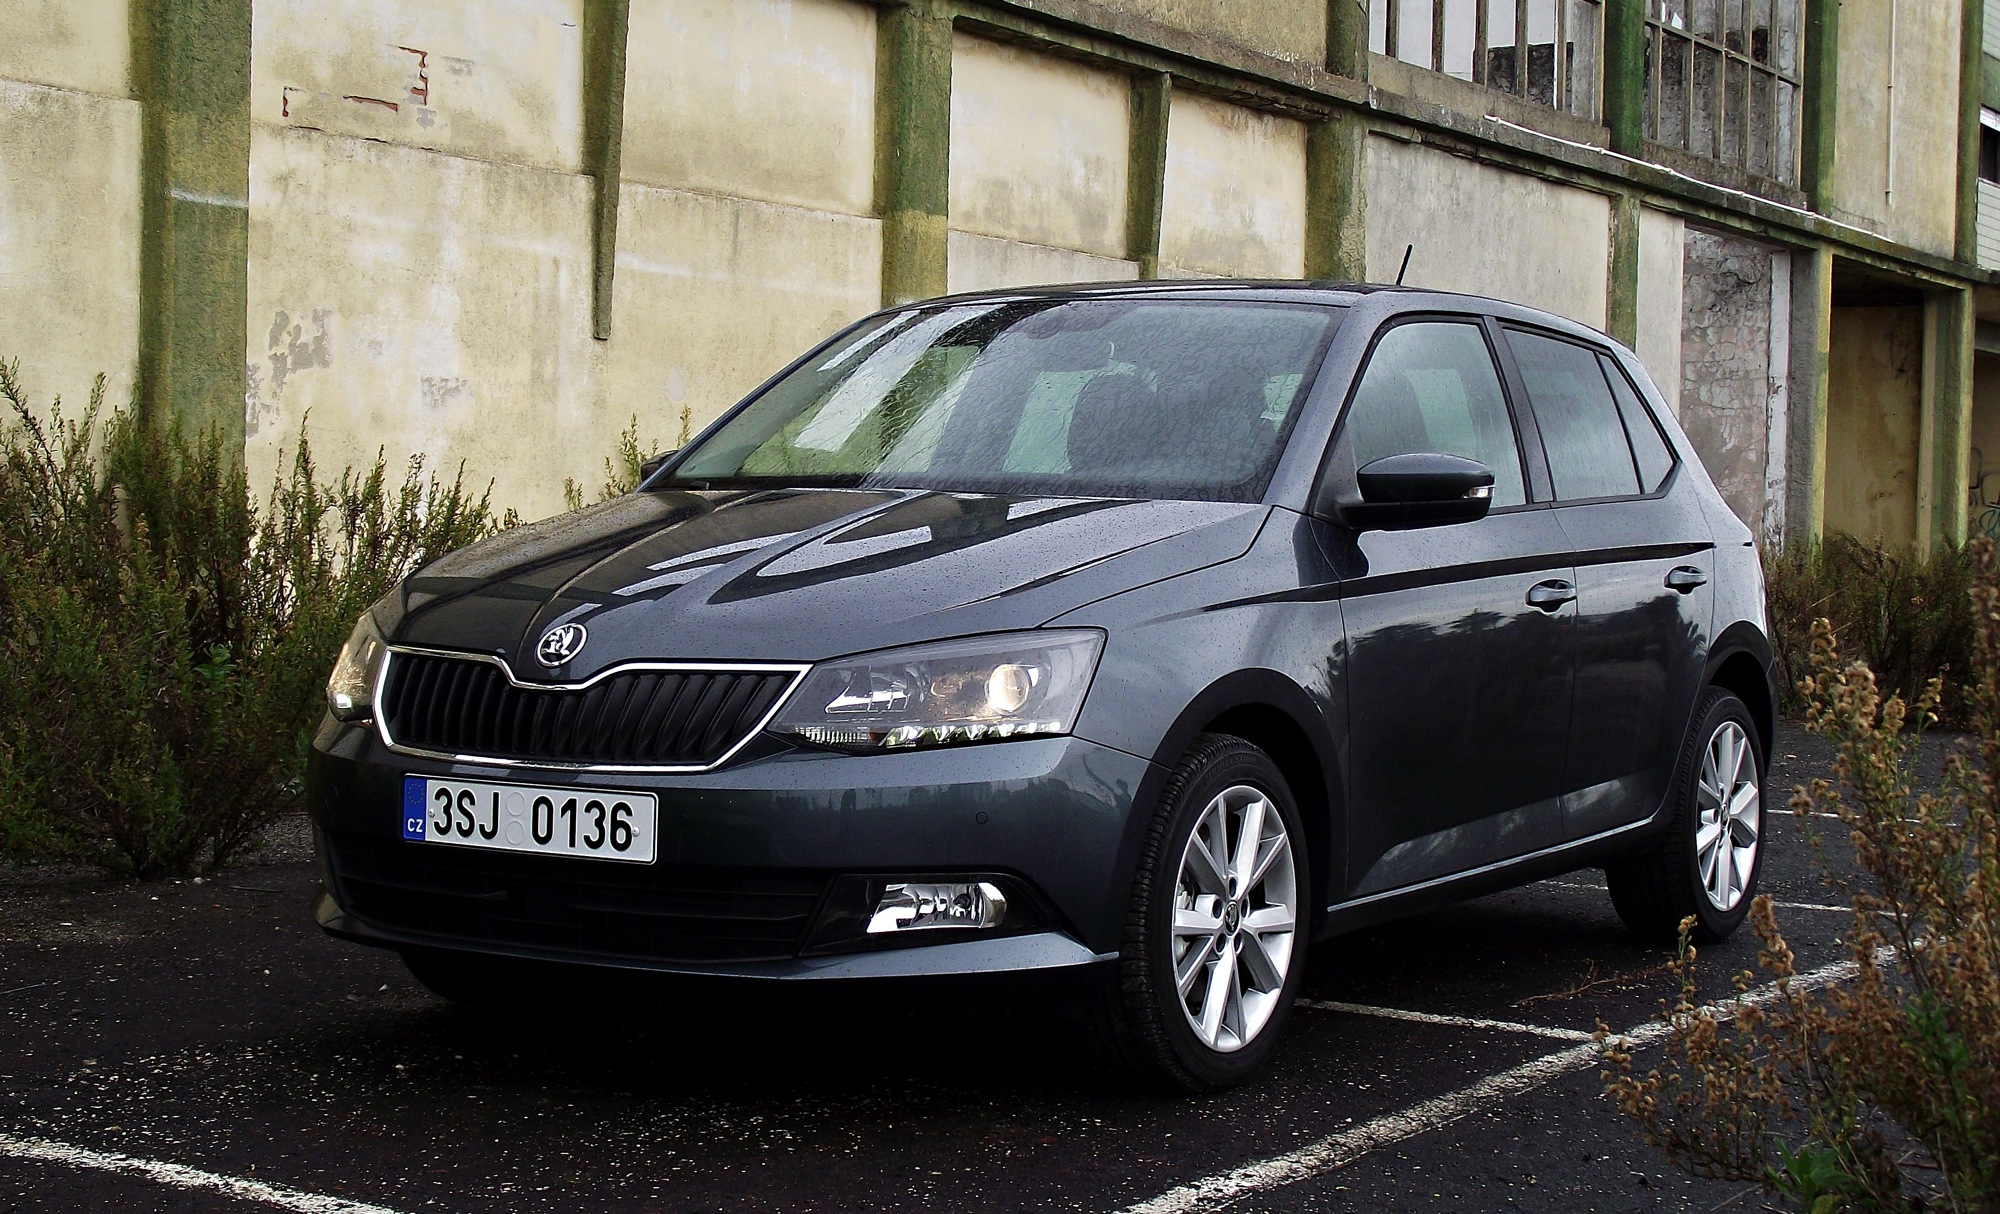 2006 skoda fabia combi 6y pictures information and. Black Bedroom Furniture Sets. Home Design Ideas